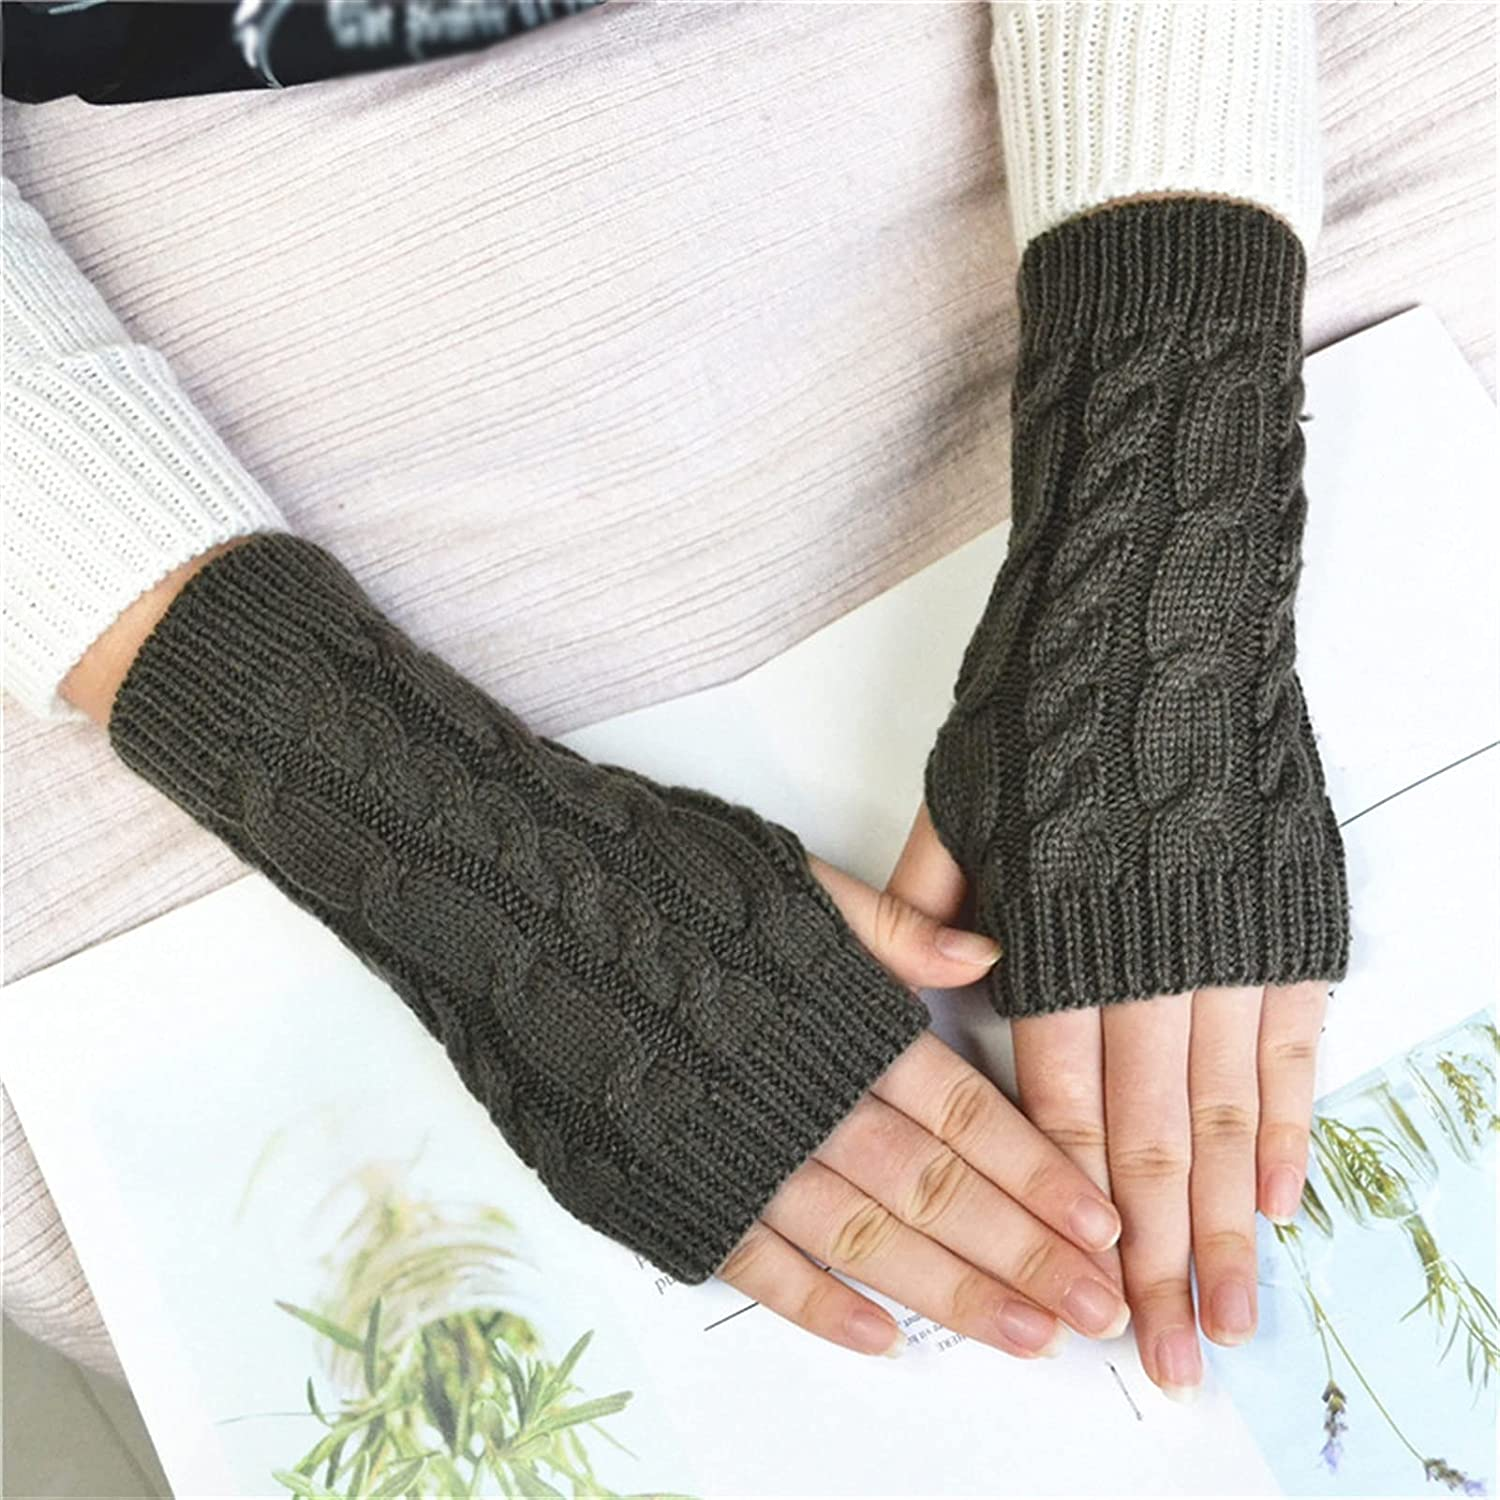 LUBINGT Winter Gloves Women Gloves Faux Fur Hand Warmer Winter Gloves Women Arm Crochet Faux Wool Mittens Knitted Warm Fingerless Gloves (Color : Turquoise, Gloves Size : One Size)